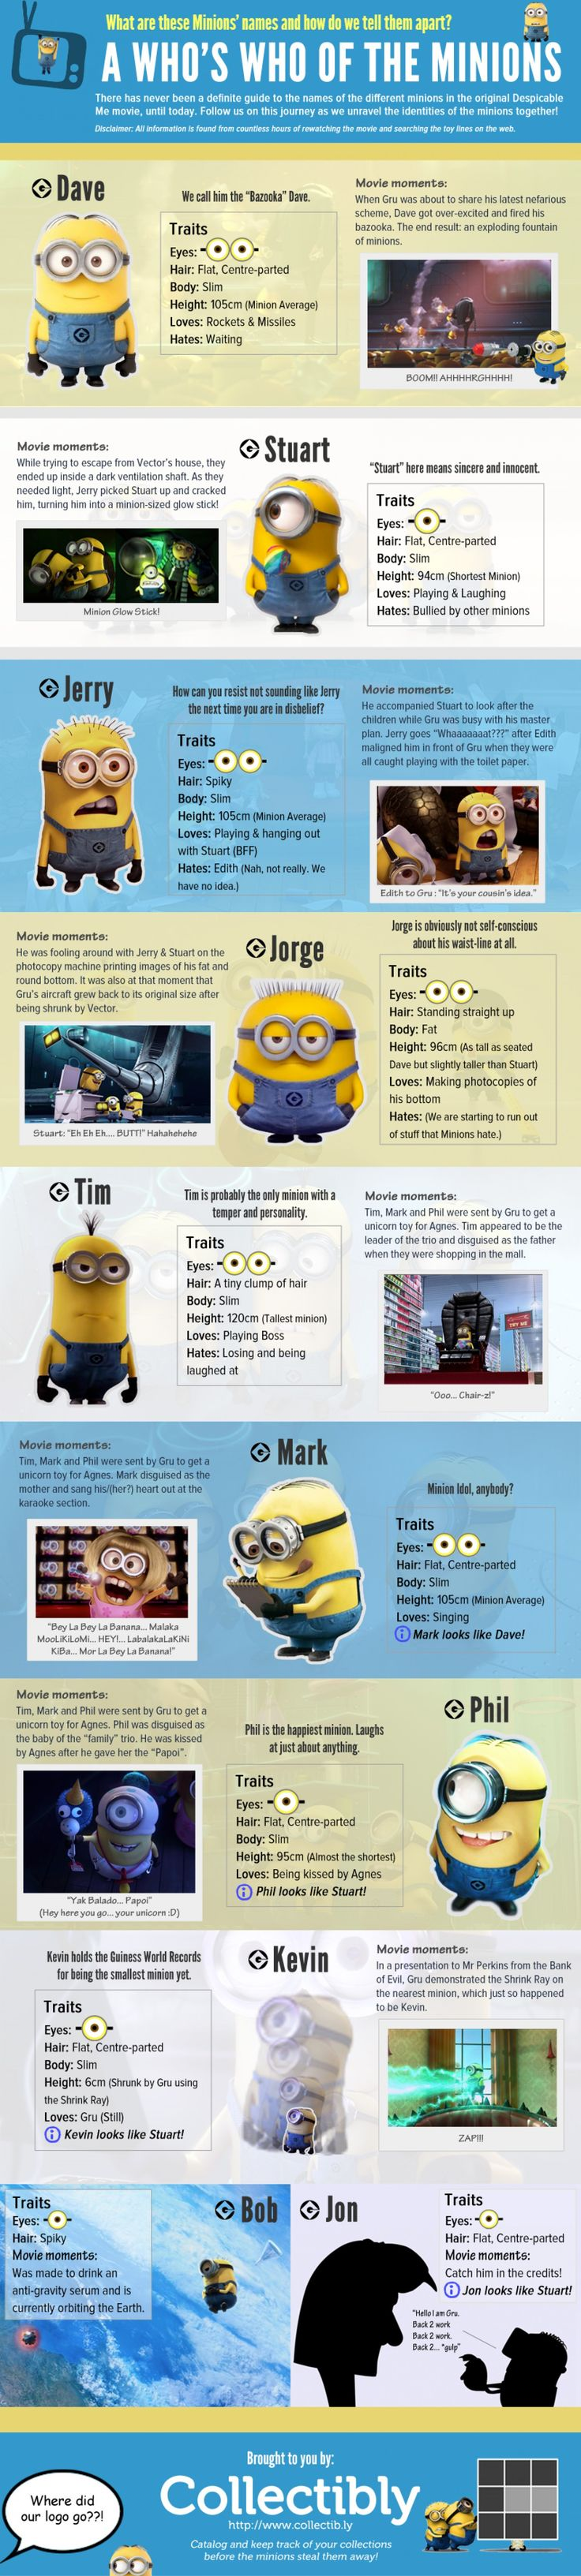 Not restaurant based, but my kids will love this! A Who's Who of the minions Infographic